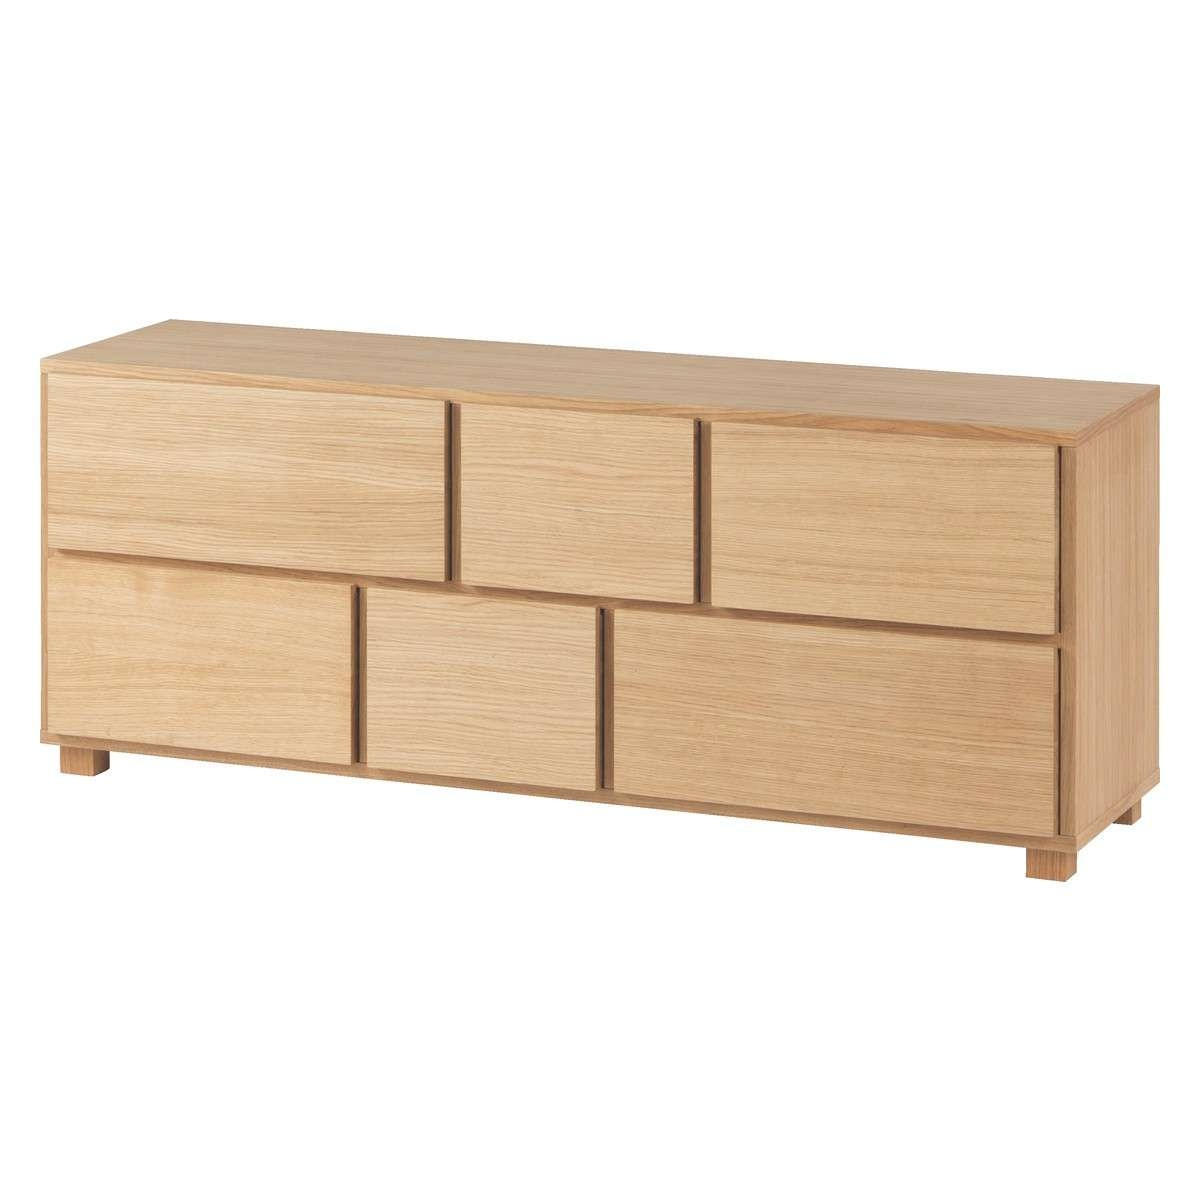 Hana Ii Oiled Oak 6 Drawer Low Wide Chest | Buy Now At Habitat Uk Inside Low Wooden Sideboards (View 6 of 20)